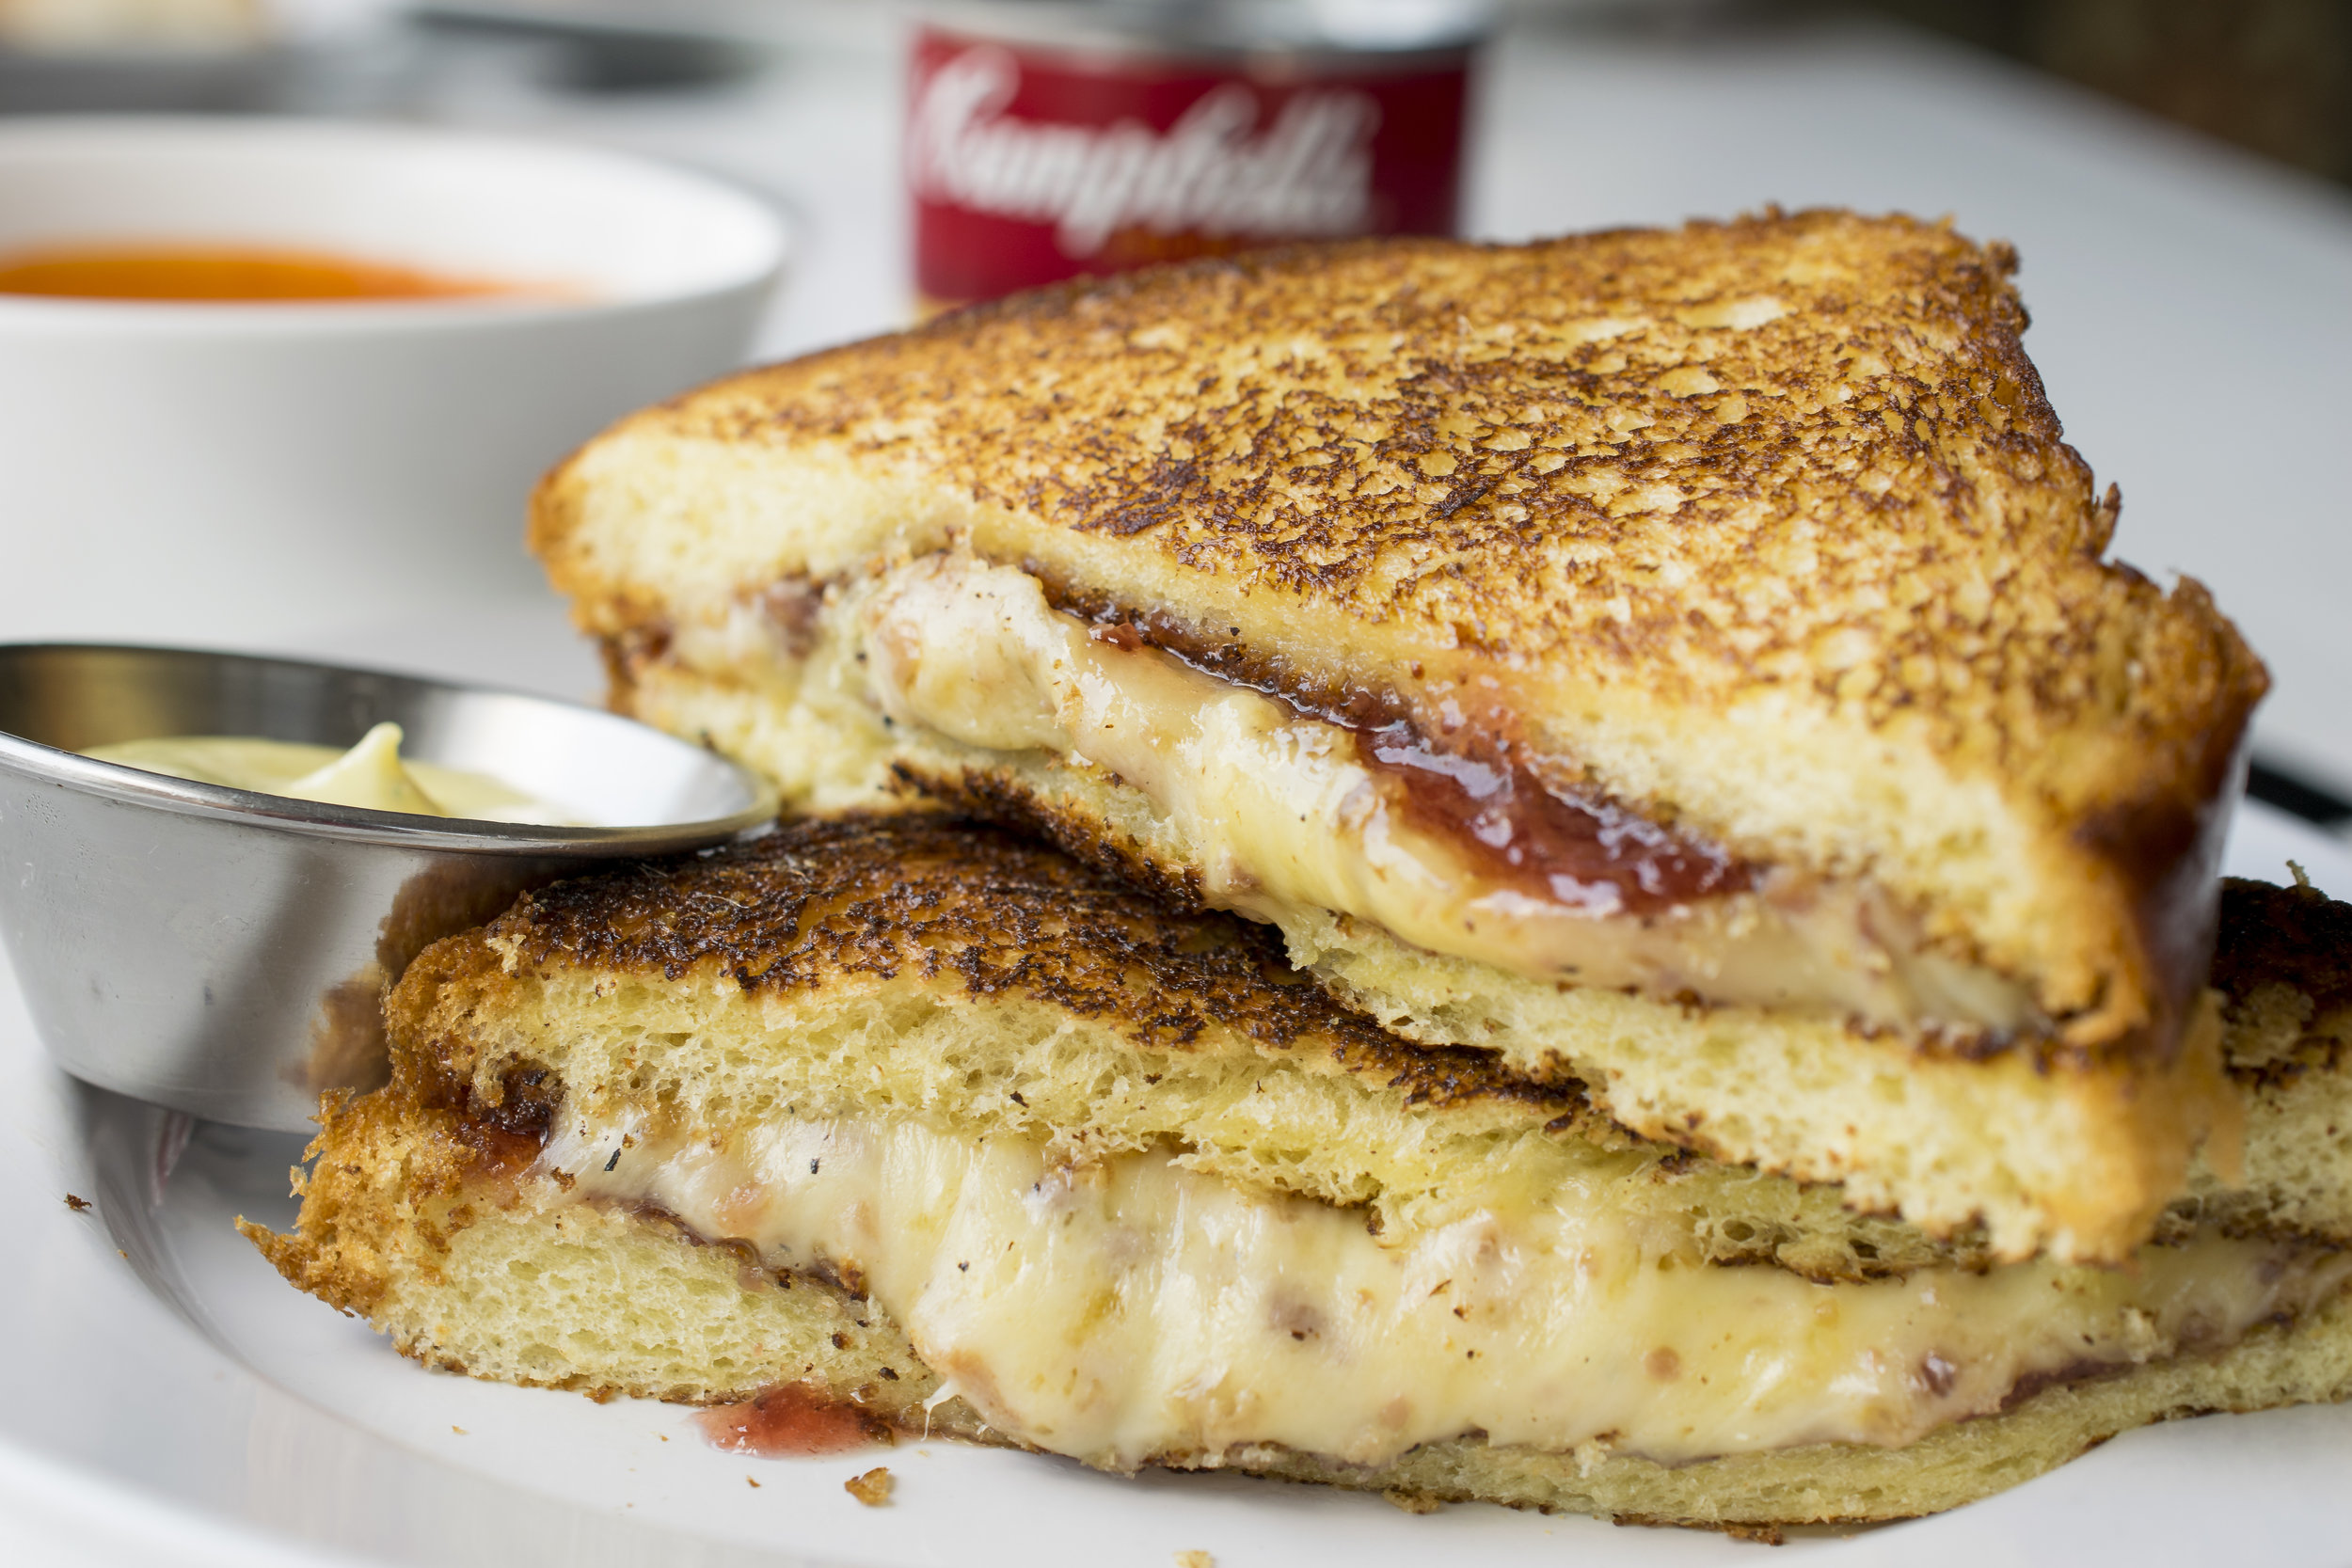 Grilled Cheese with Jam